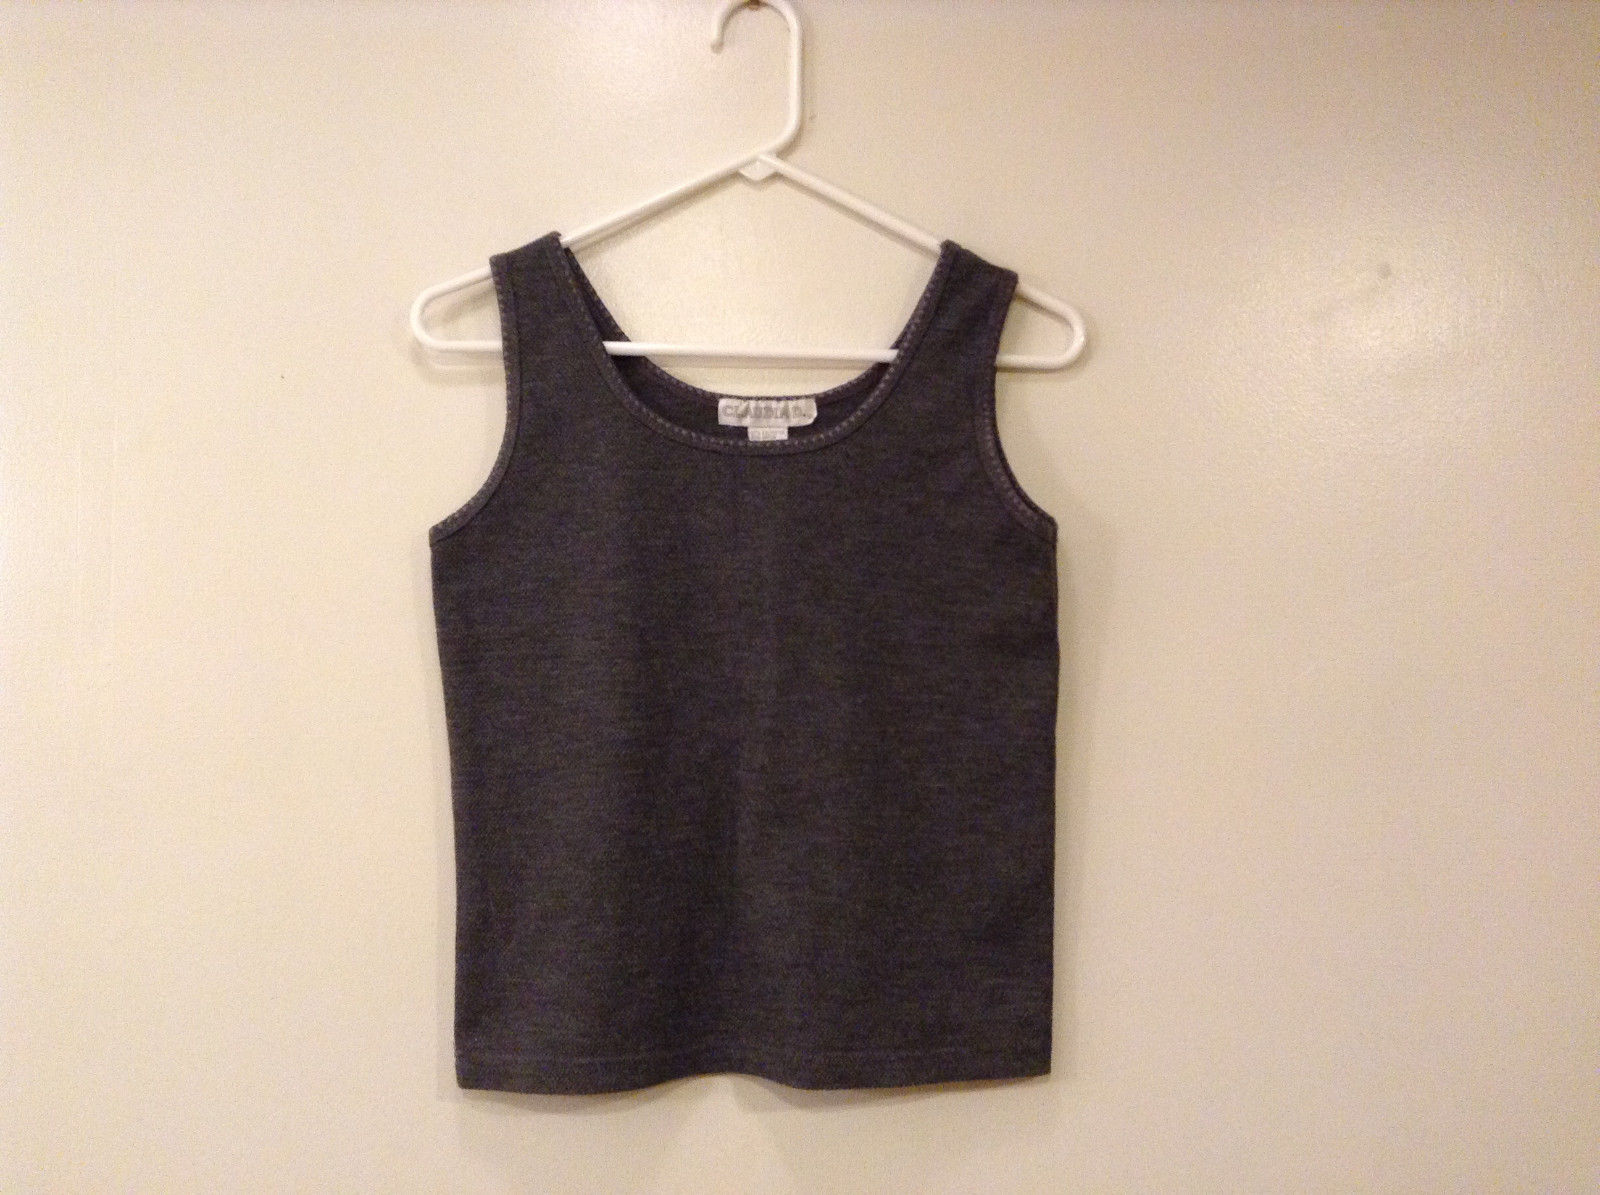 Ladies Claudia D. Gray Sleeveless Tank Top T-shirt, size S Poly/Rayon blend